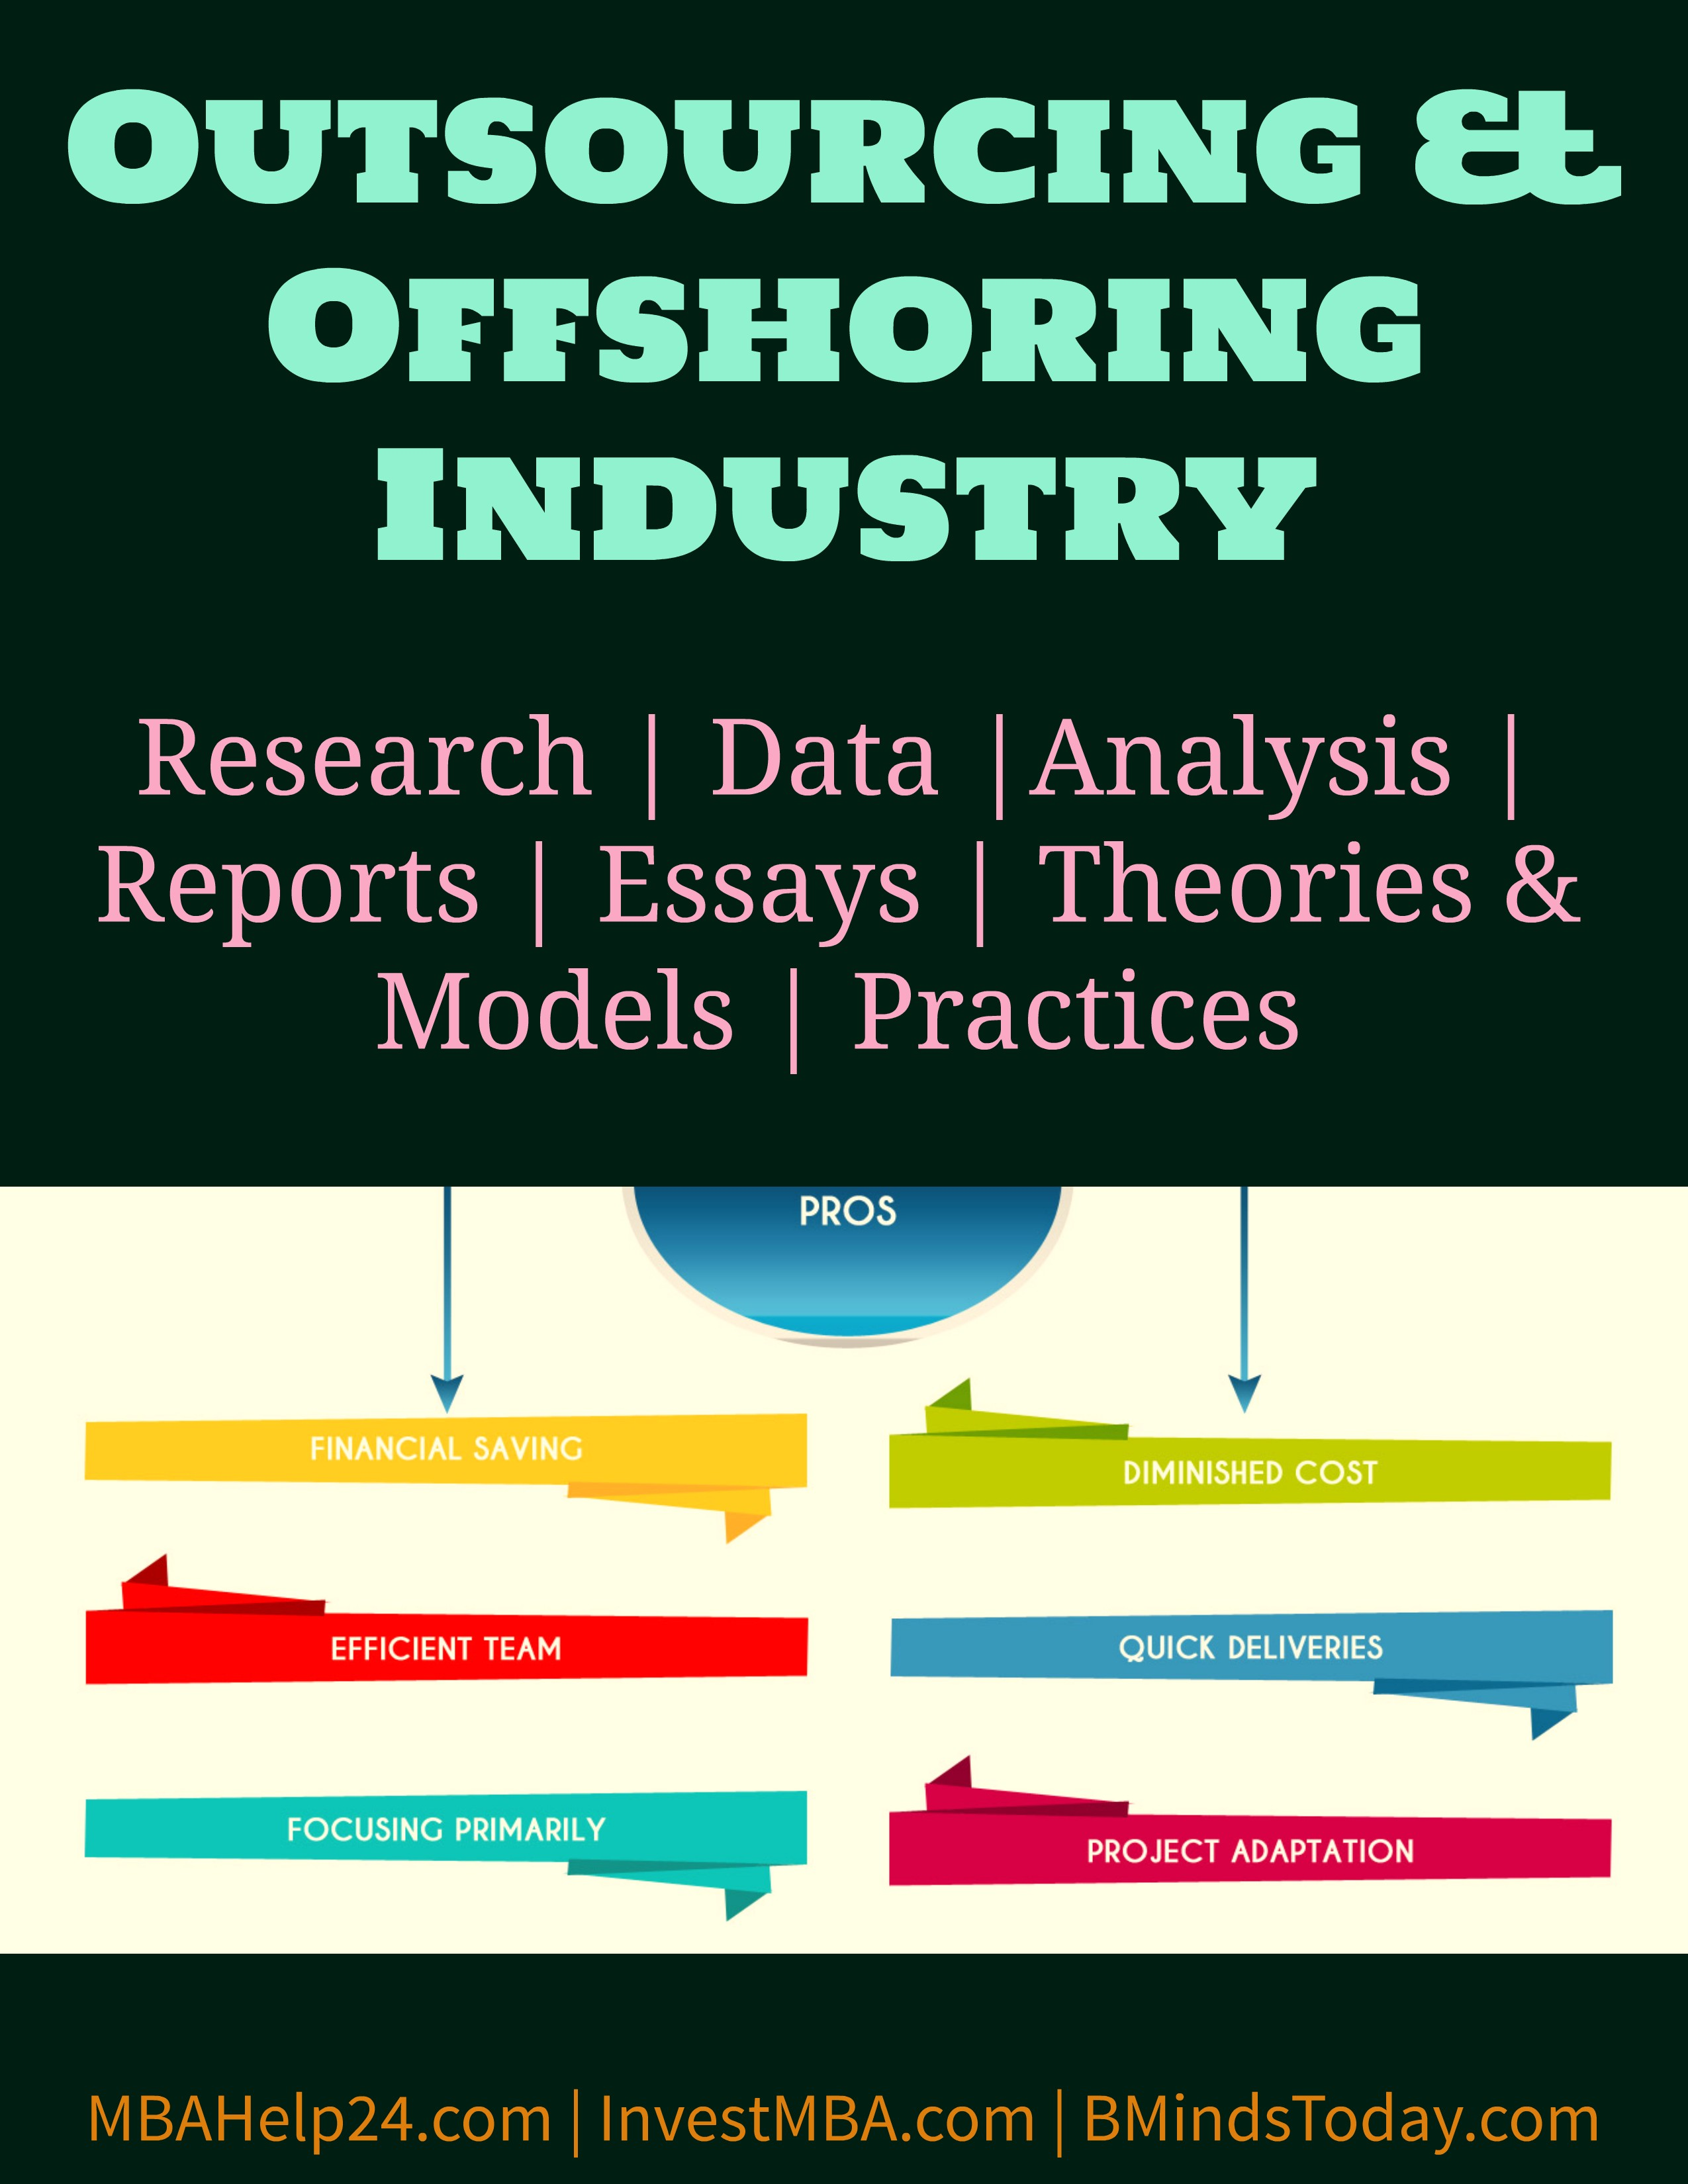 Outsourcing and Offshoring Industry Outsourcing Outsourcing and Offshoring Industry Outsourcing and Offshoring Industry